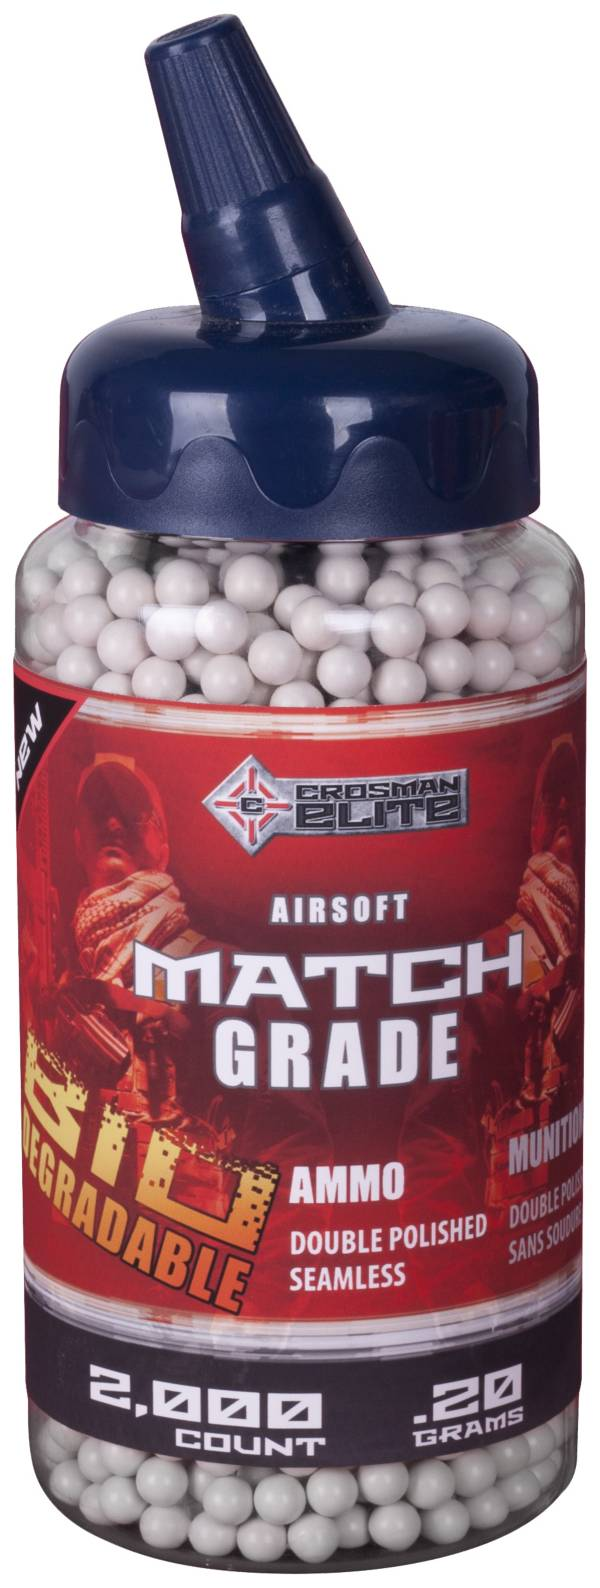 Crosman .20G Airsoft BBs - 2000 Count product image